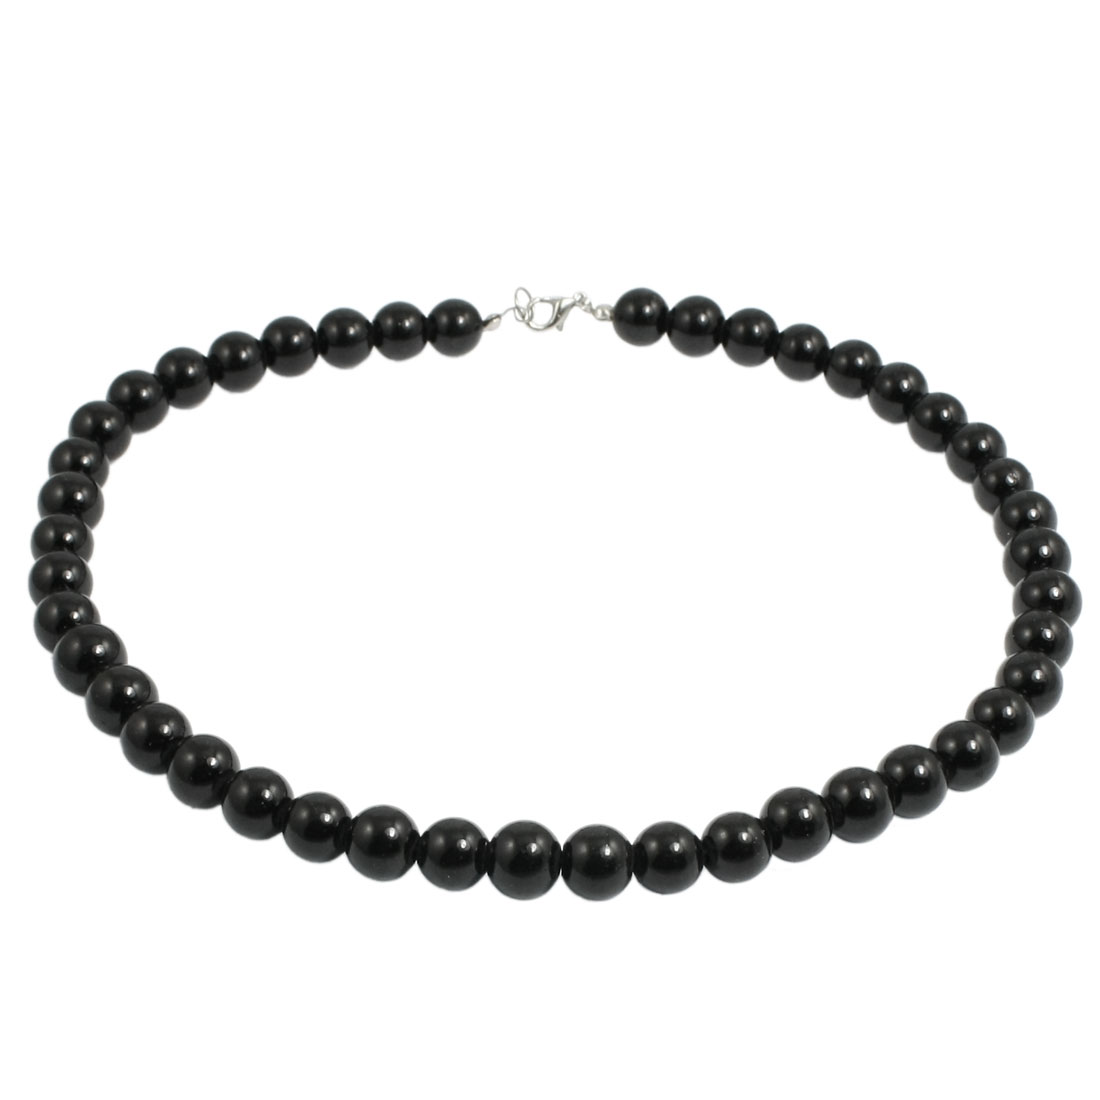 Connected Black Polished 44 Plastic Beads Necklace for Man